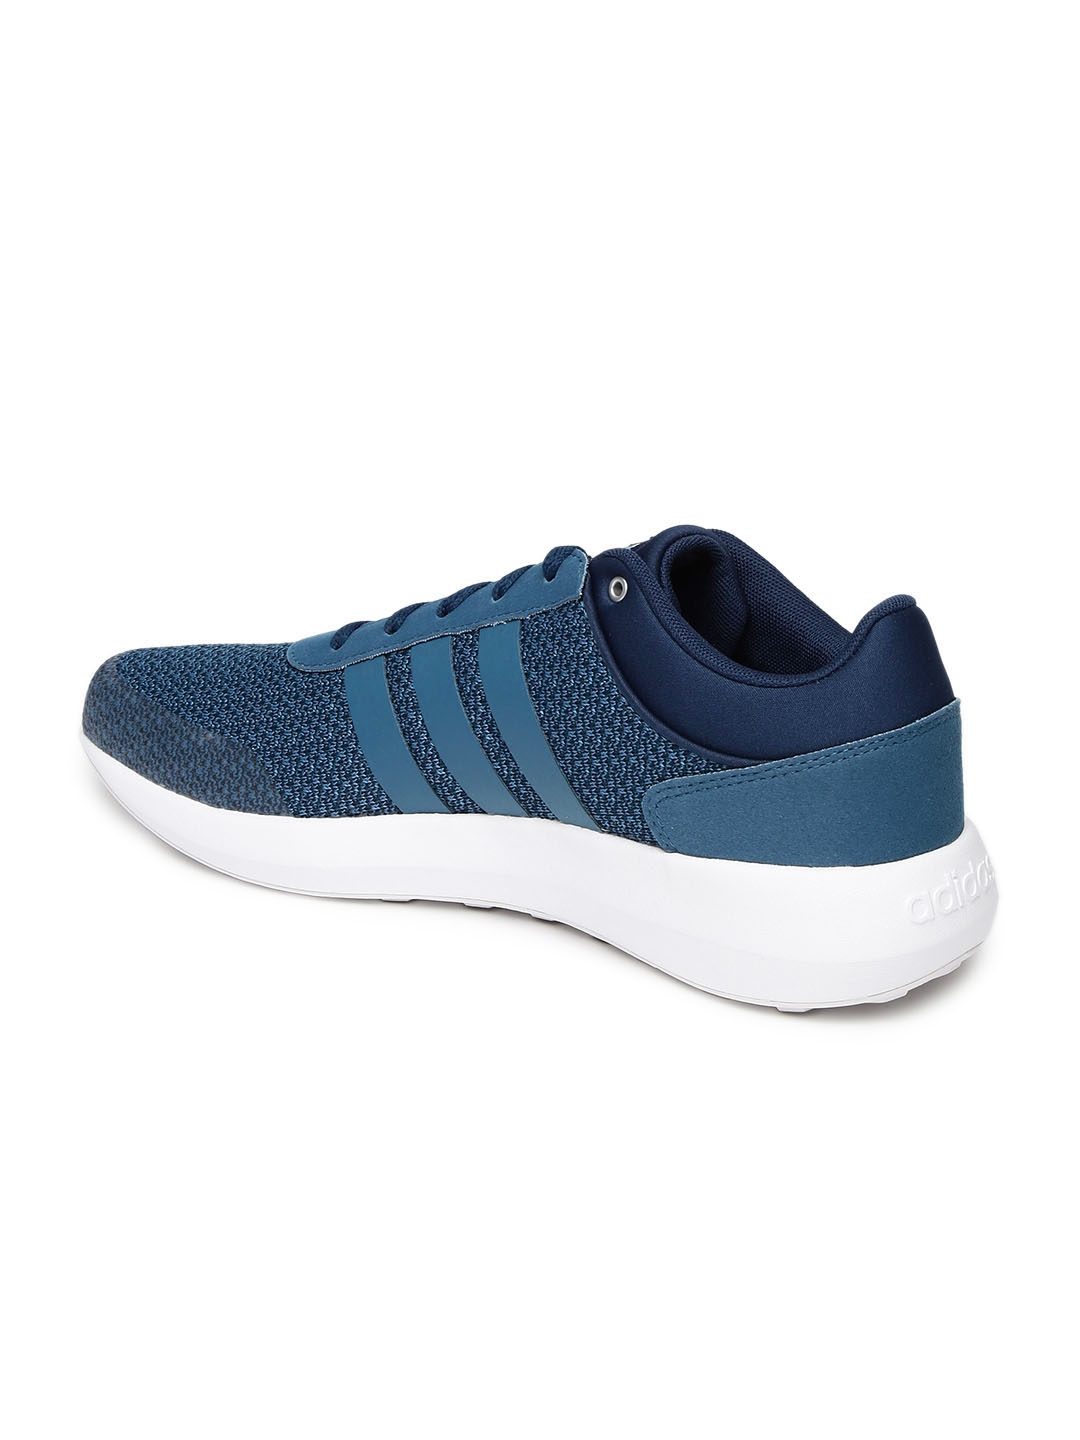 For Shoes Cloudfoam Adidas Casual Buy Sneakers Neo Race Men Blue 68WwzqS